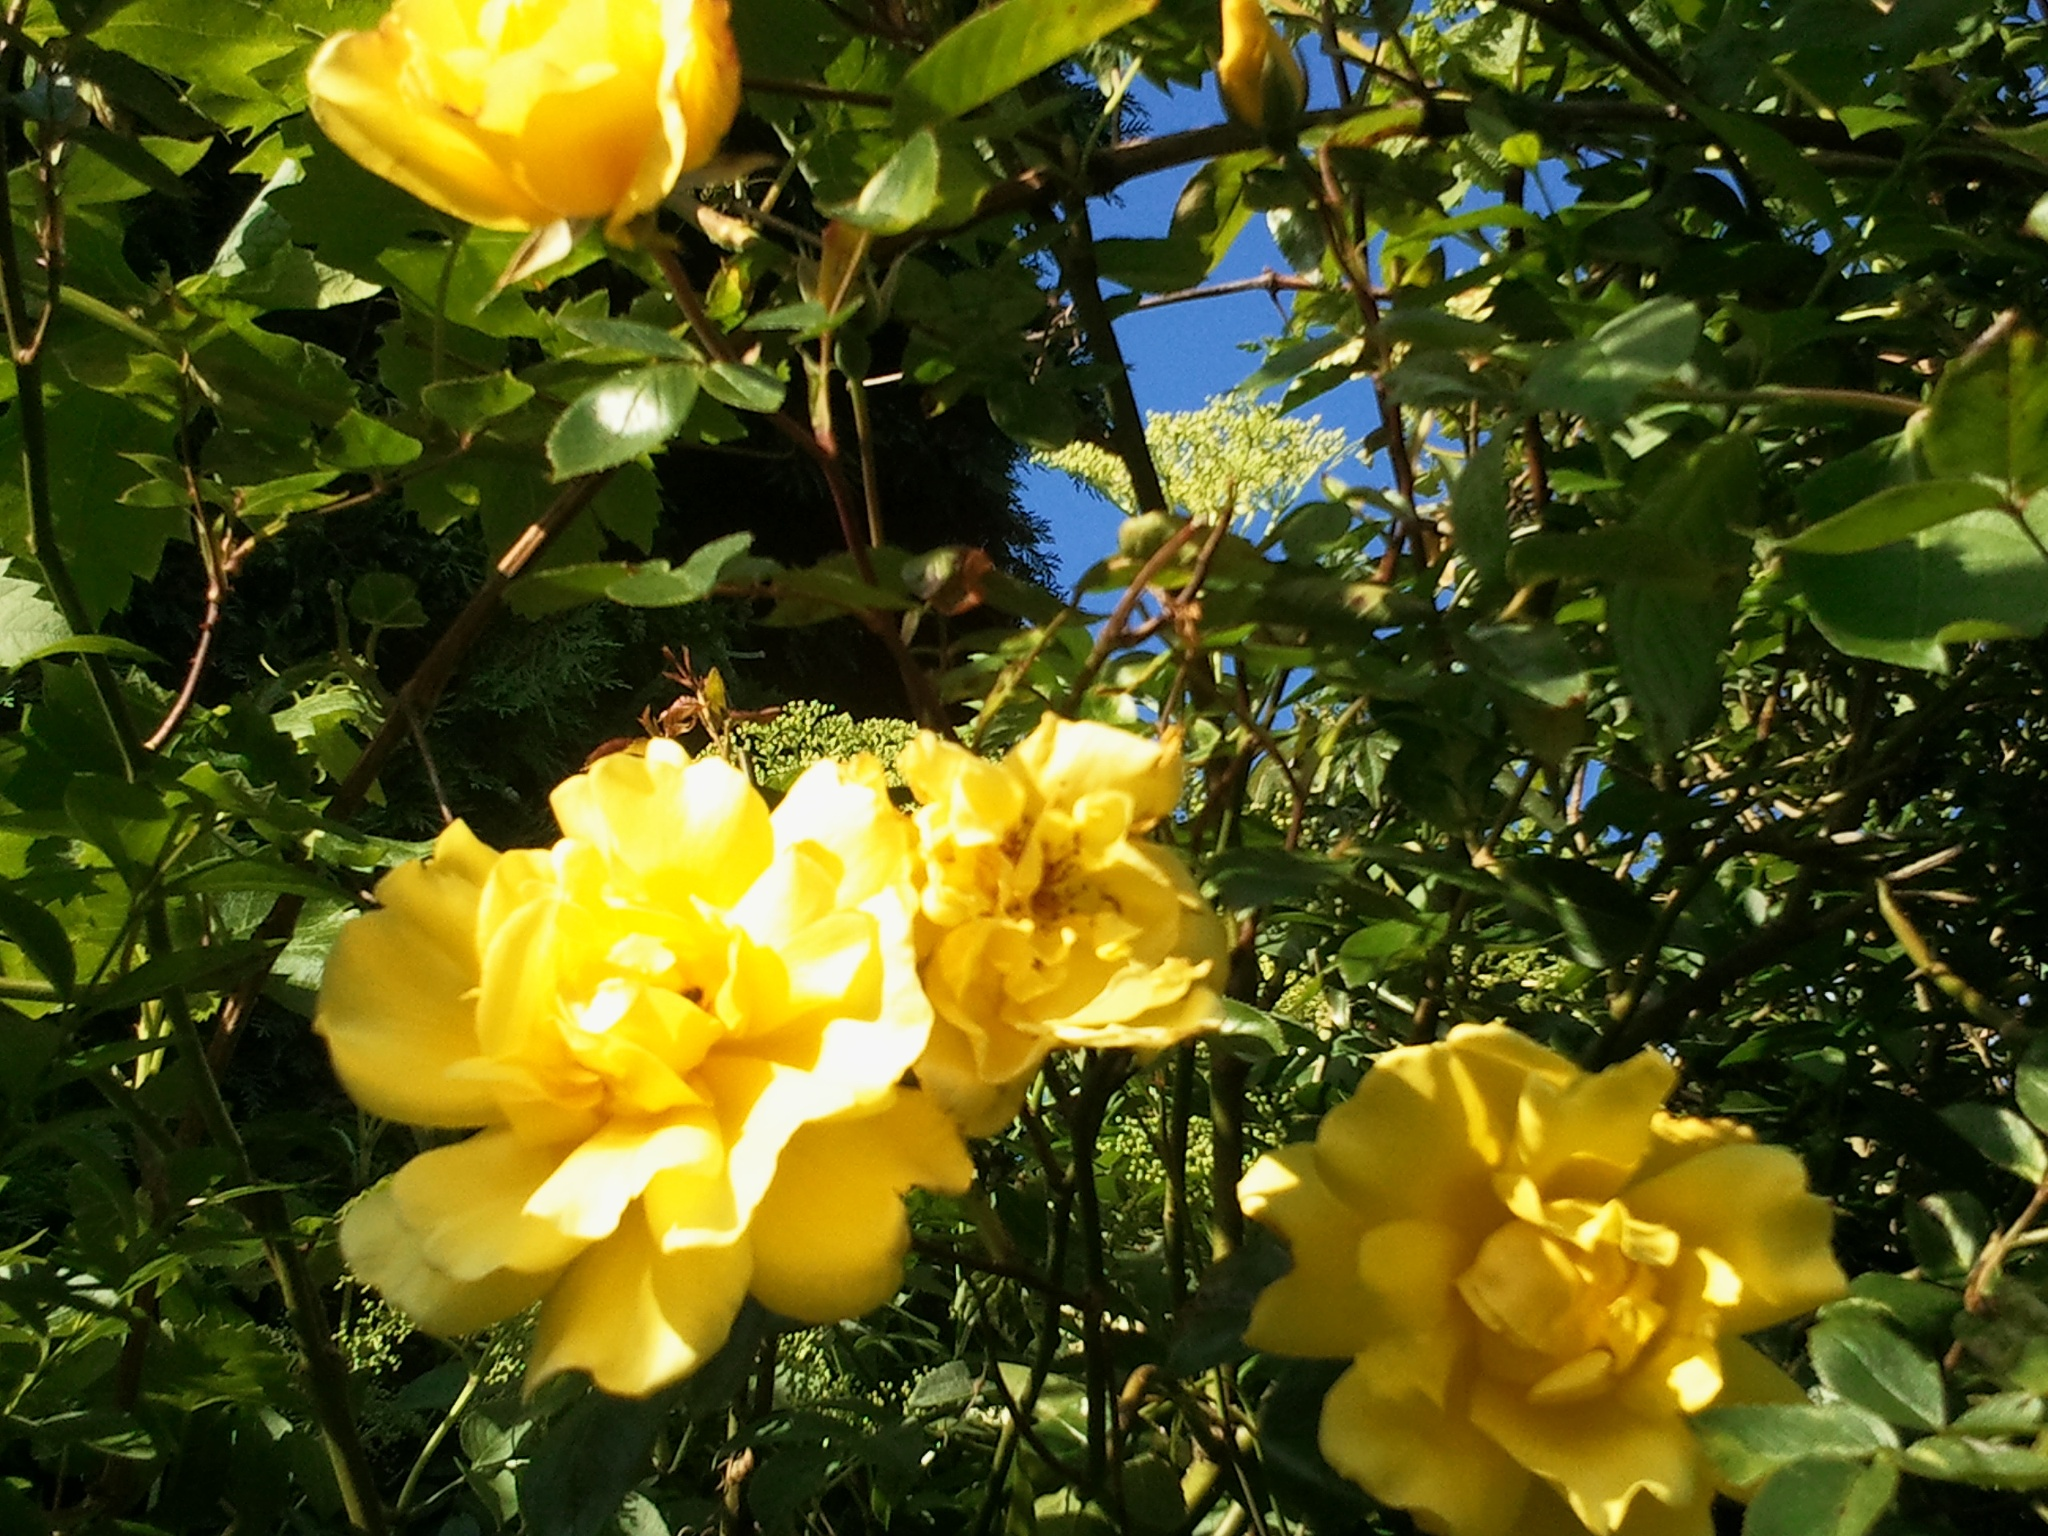 Yellow Roses by Reyhan K-Luttman